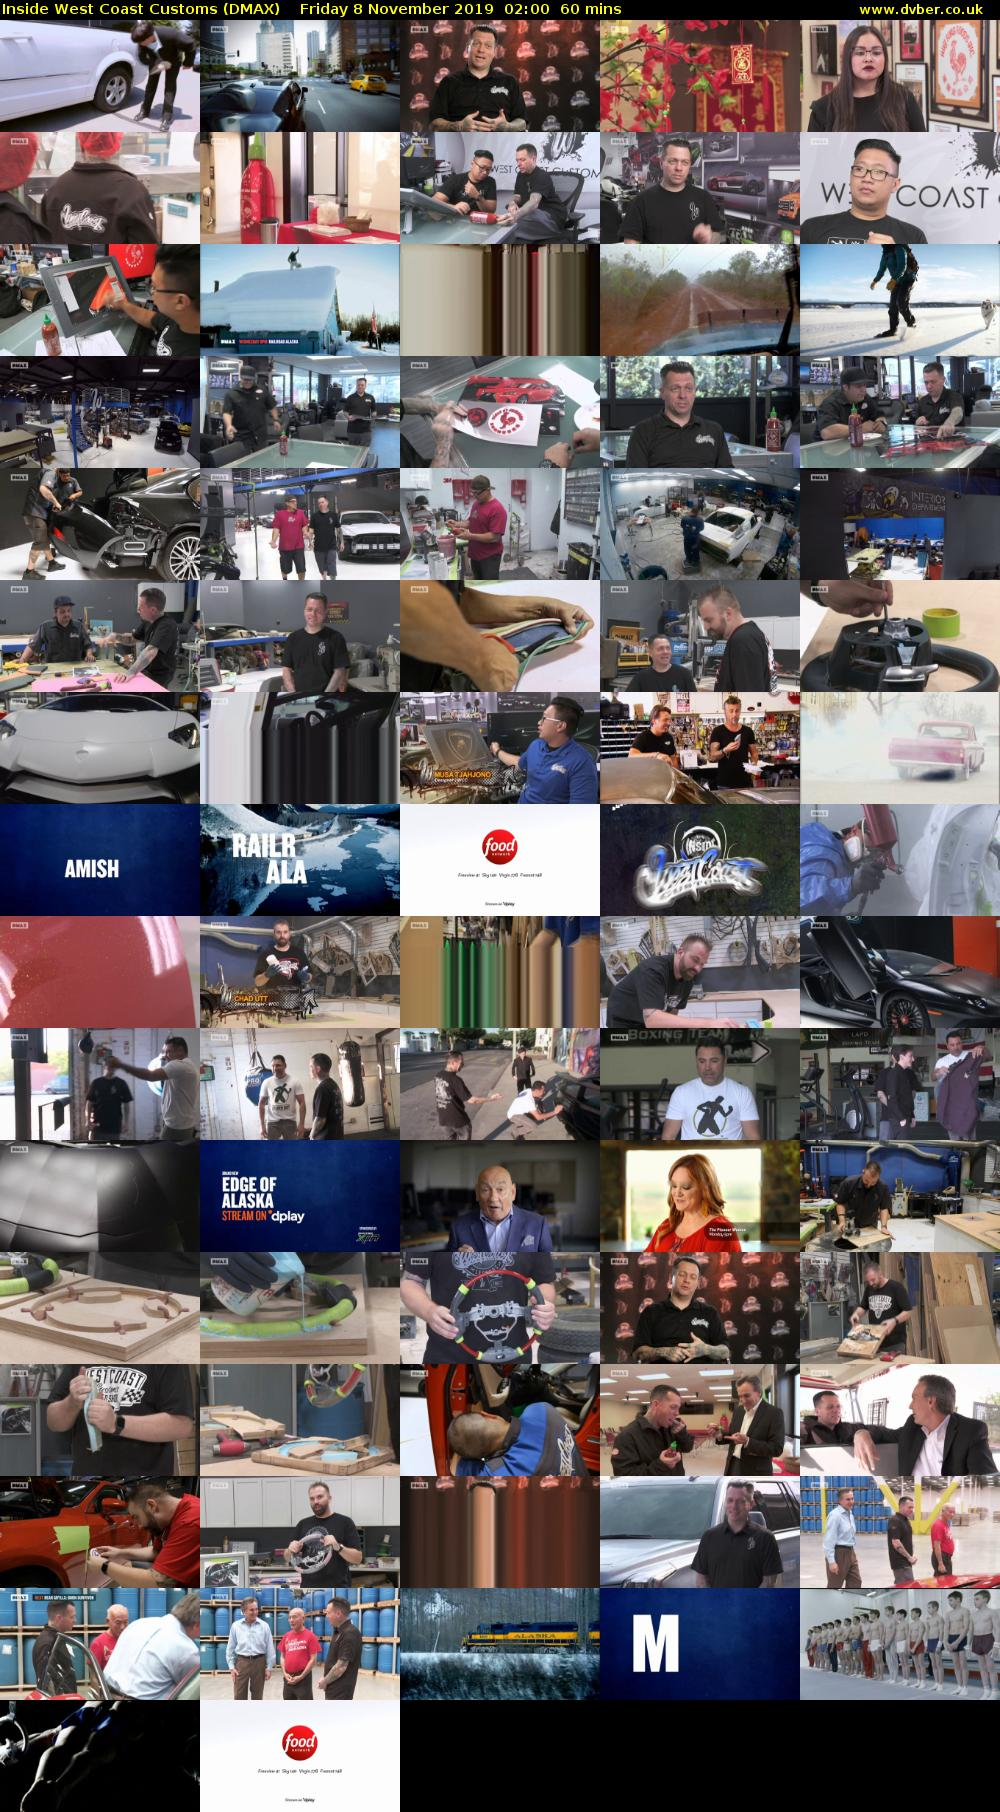 Inside West Coast Customs (DMAX) Friday 8 November 2019 02:00 - 03:00